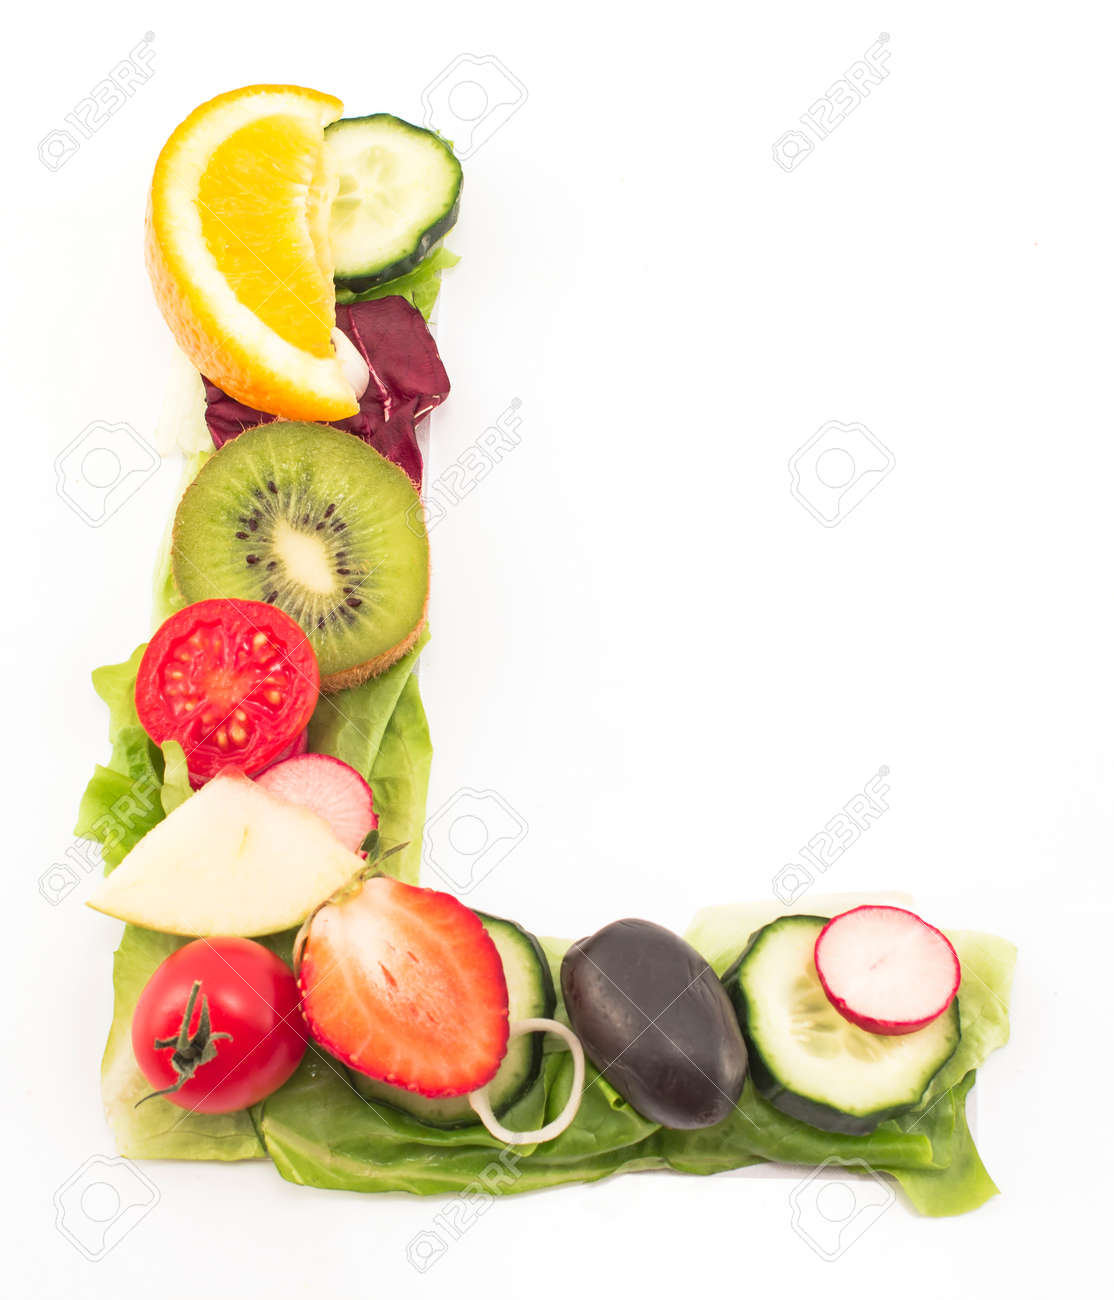 Letter L Made Salad And Fruits Stock Picture And Royalty